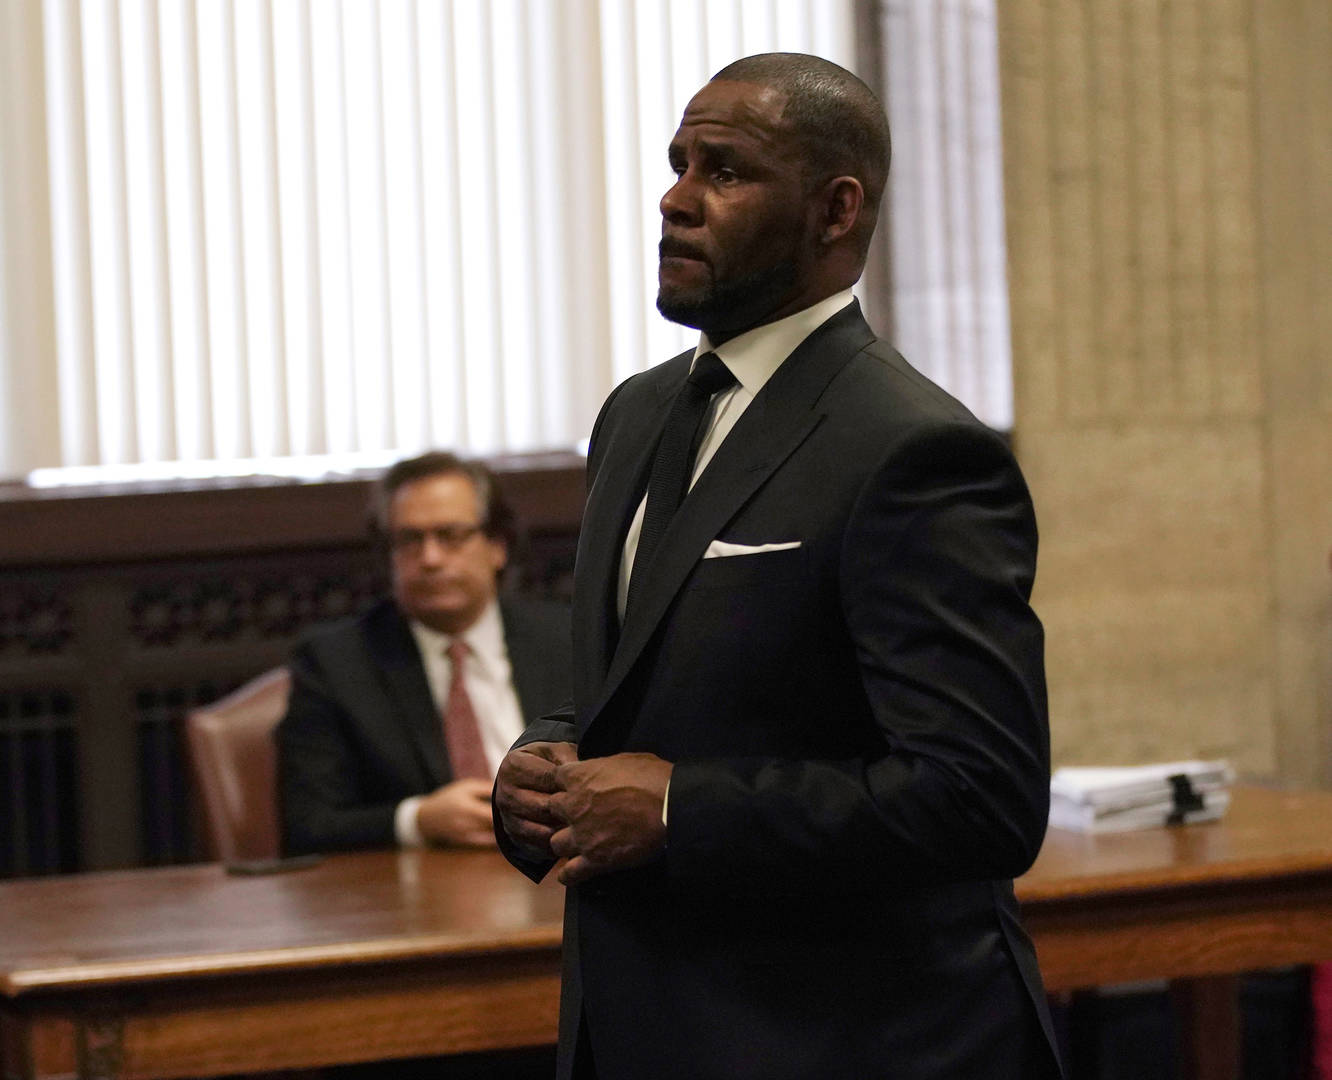 R. Kelly's Arrest: All The Charges, Explained